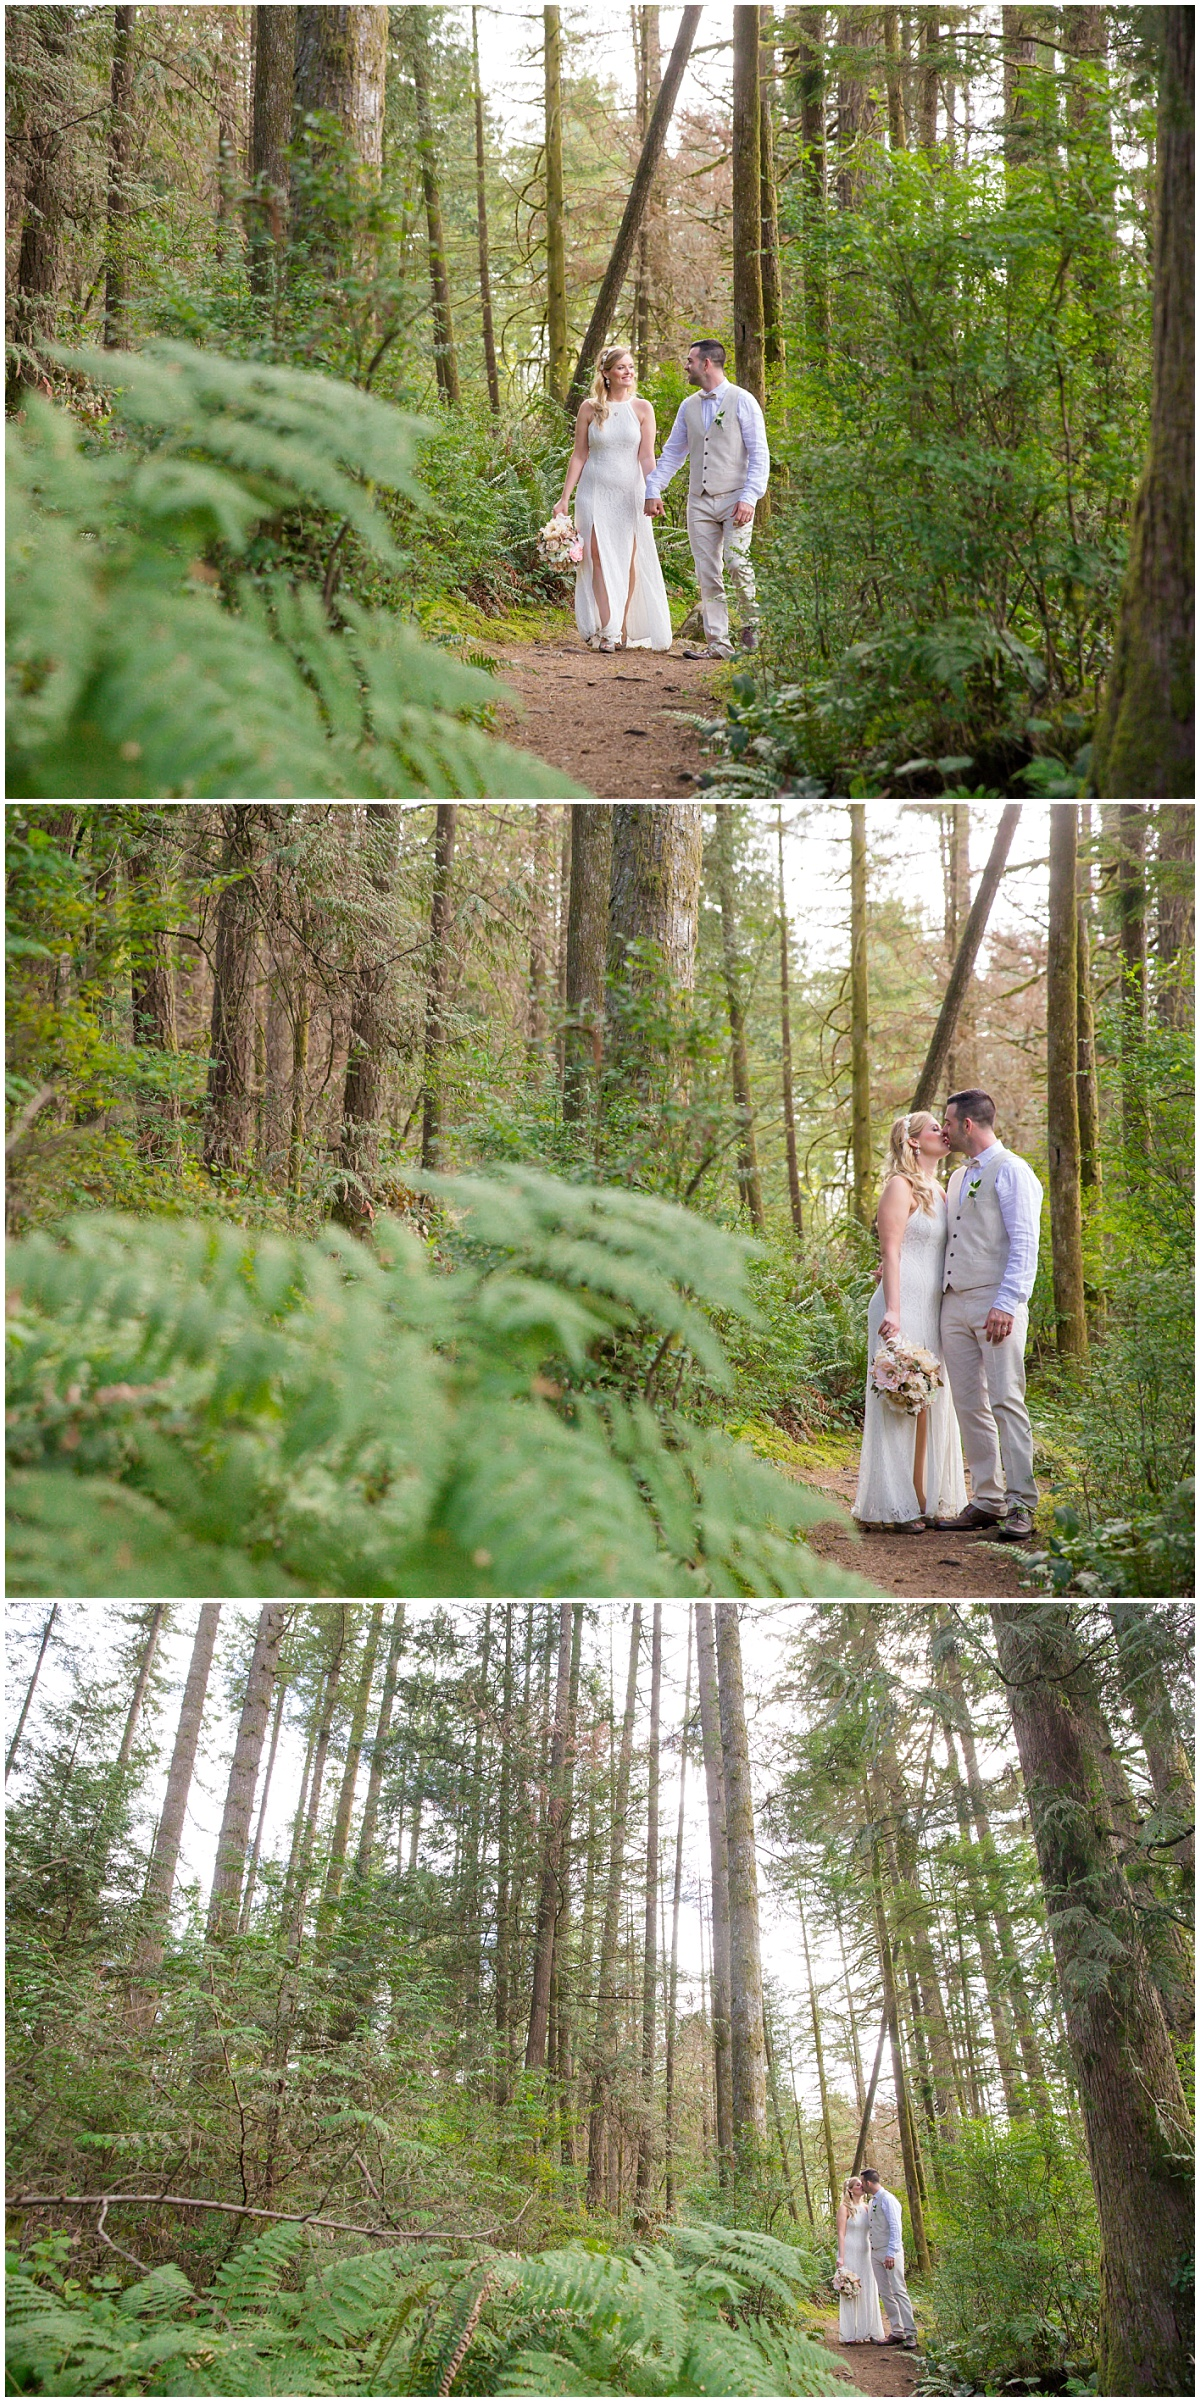 Amazing Day Photography - Minnekada Wedding - Port Coquitlam Wedding - Langley Wedding Photography - BC Wedding Photography